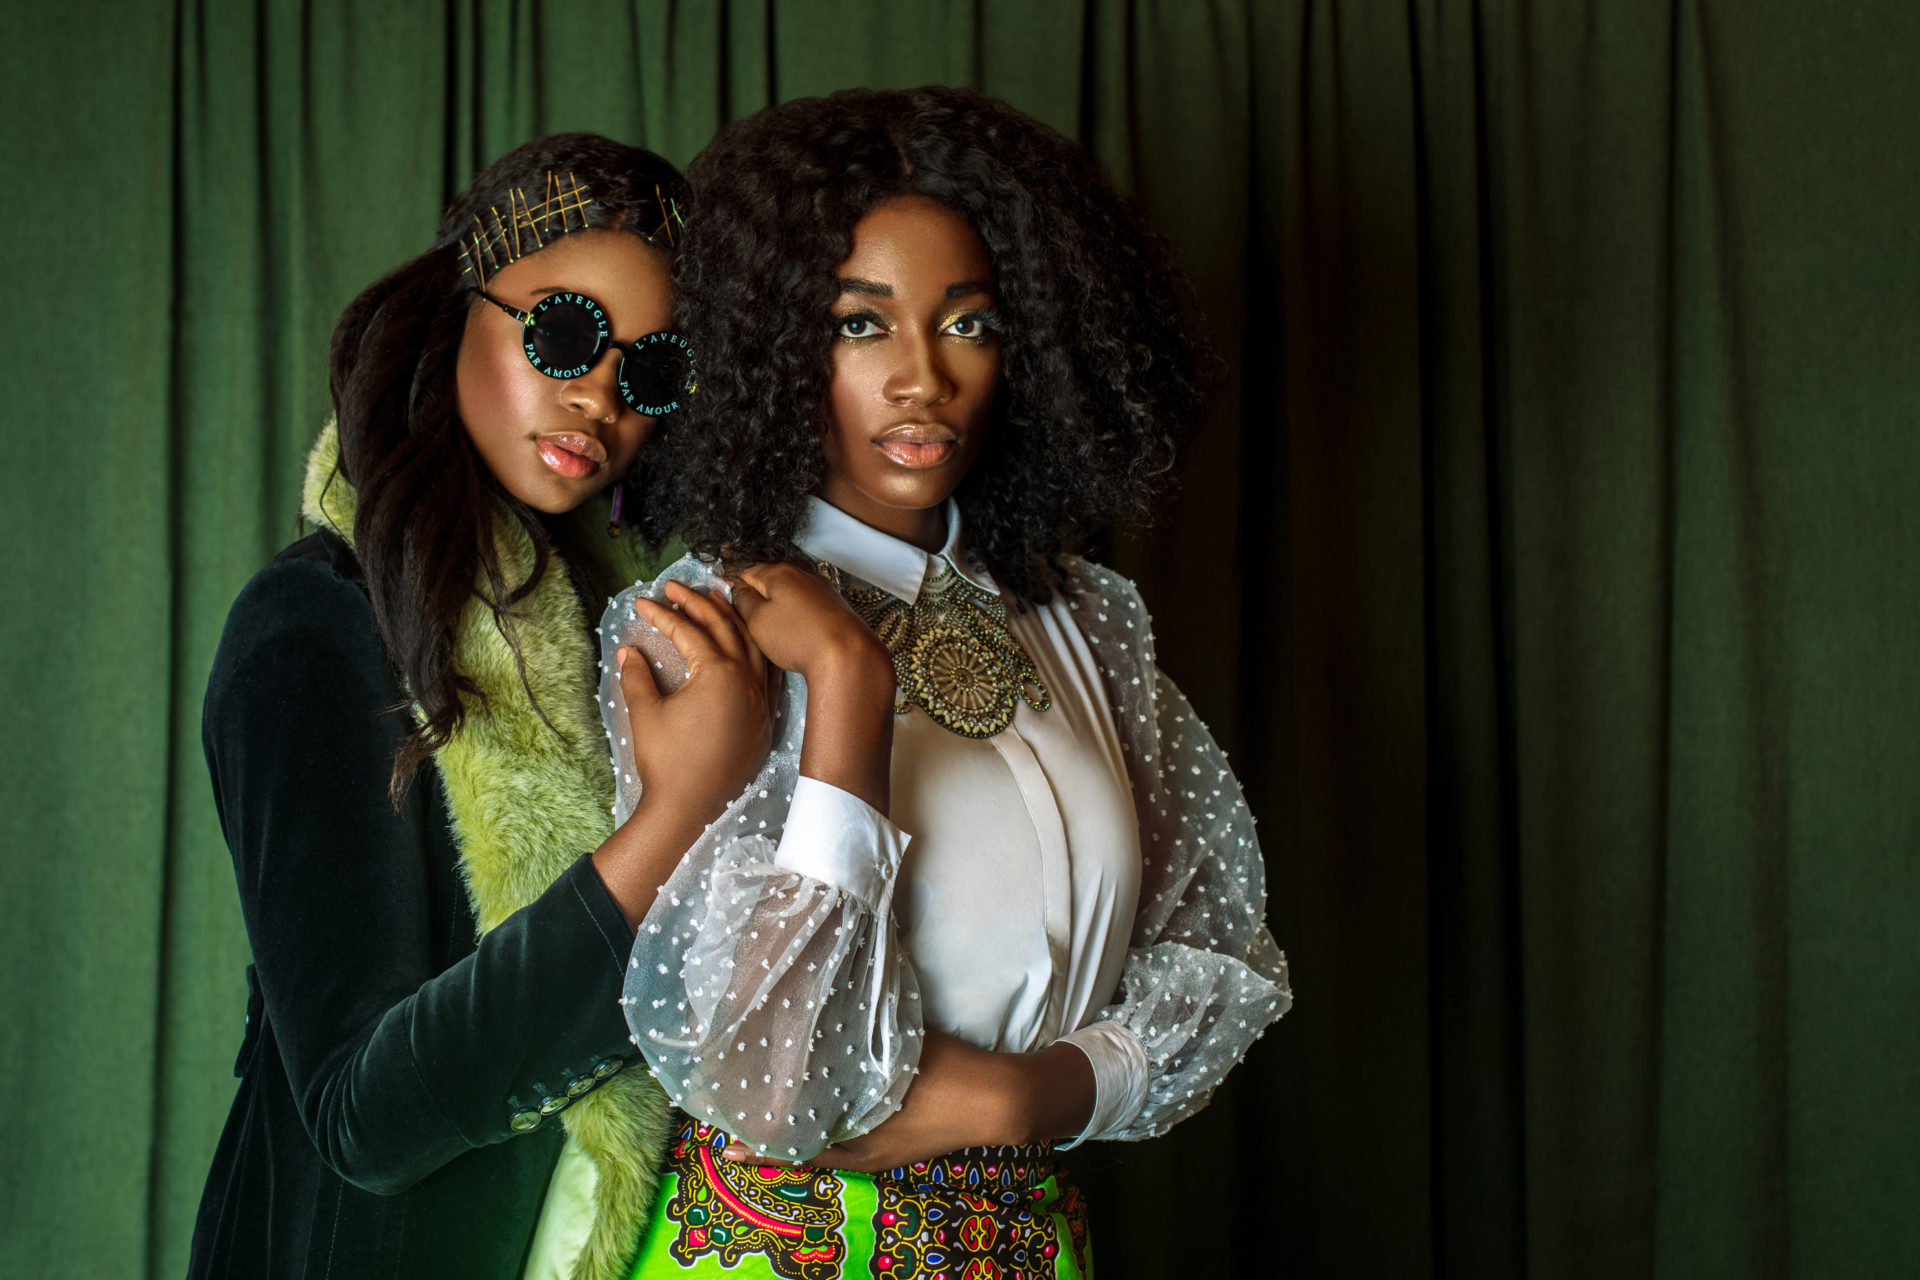 Two Beautiful Black Ladies in African Designer Clothing